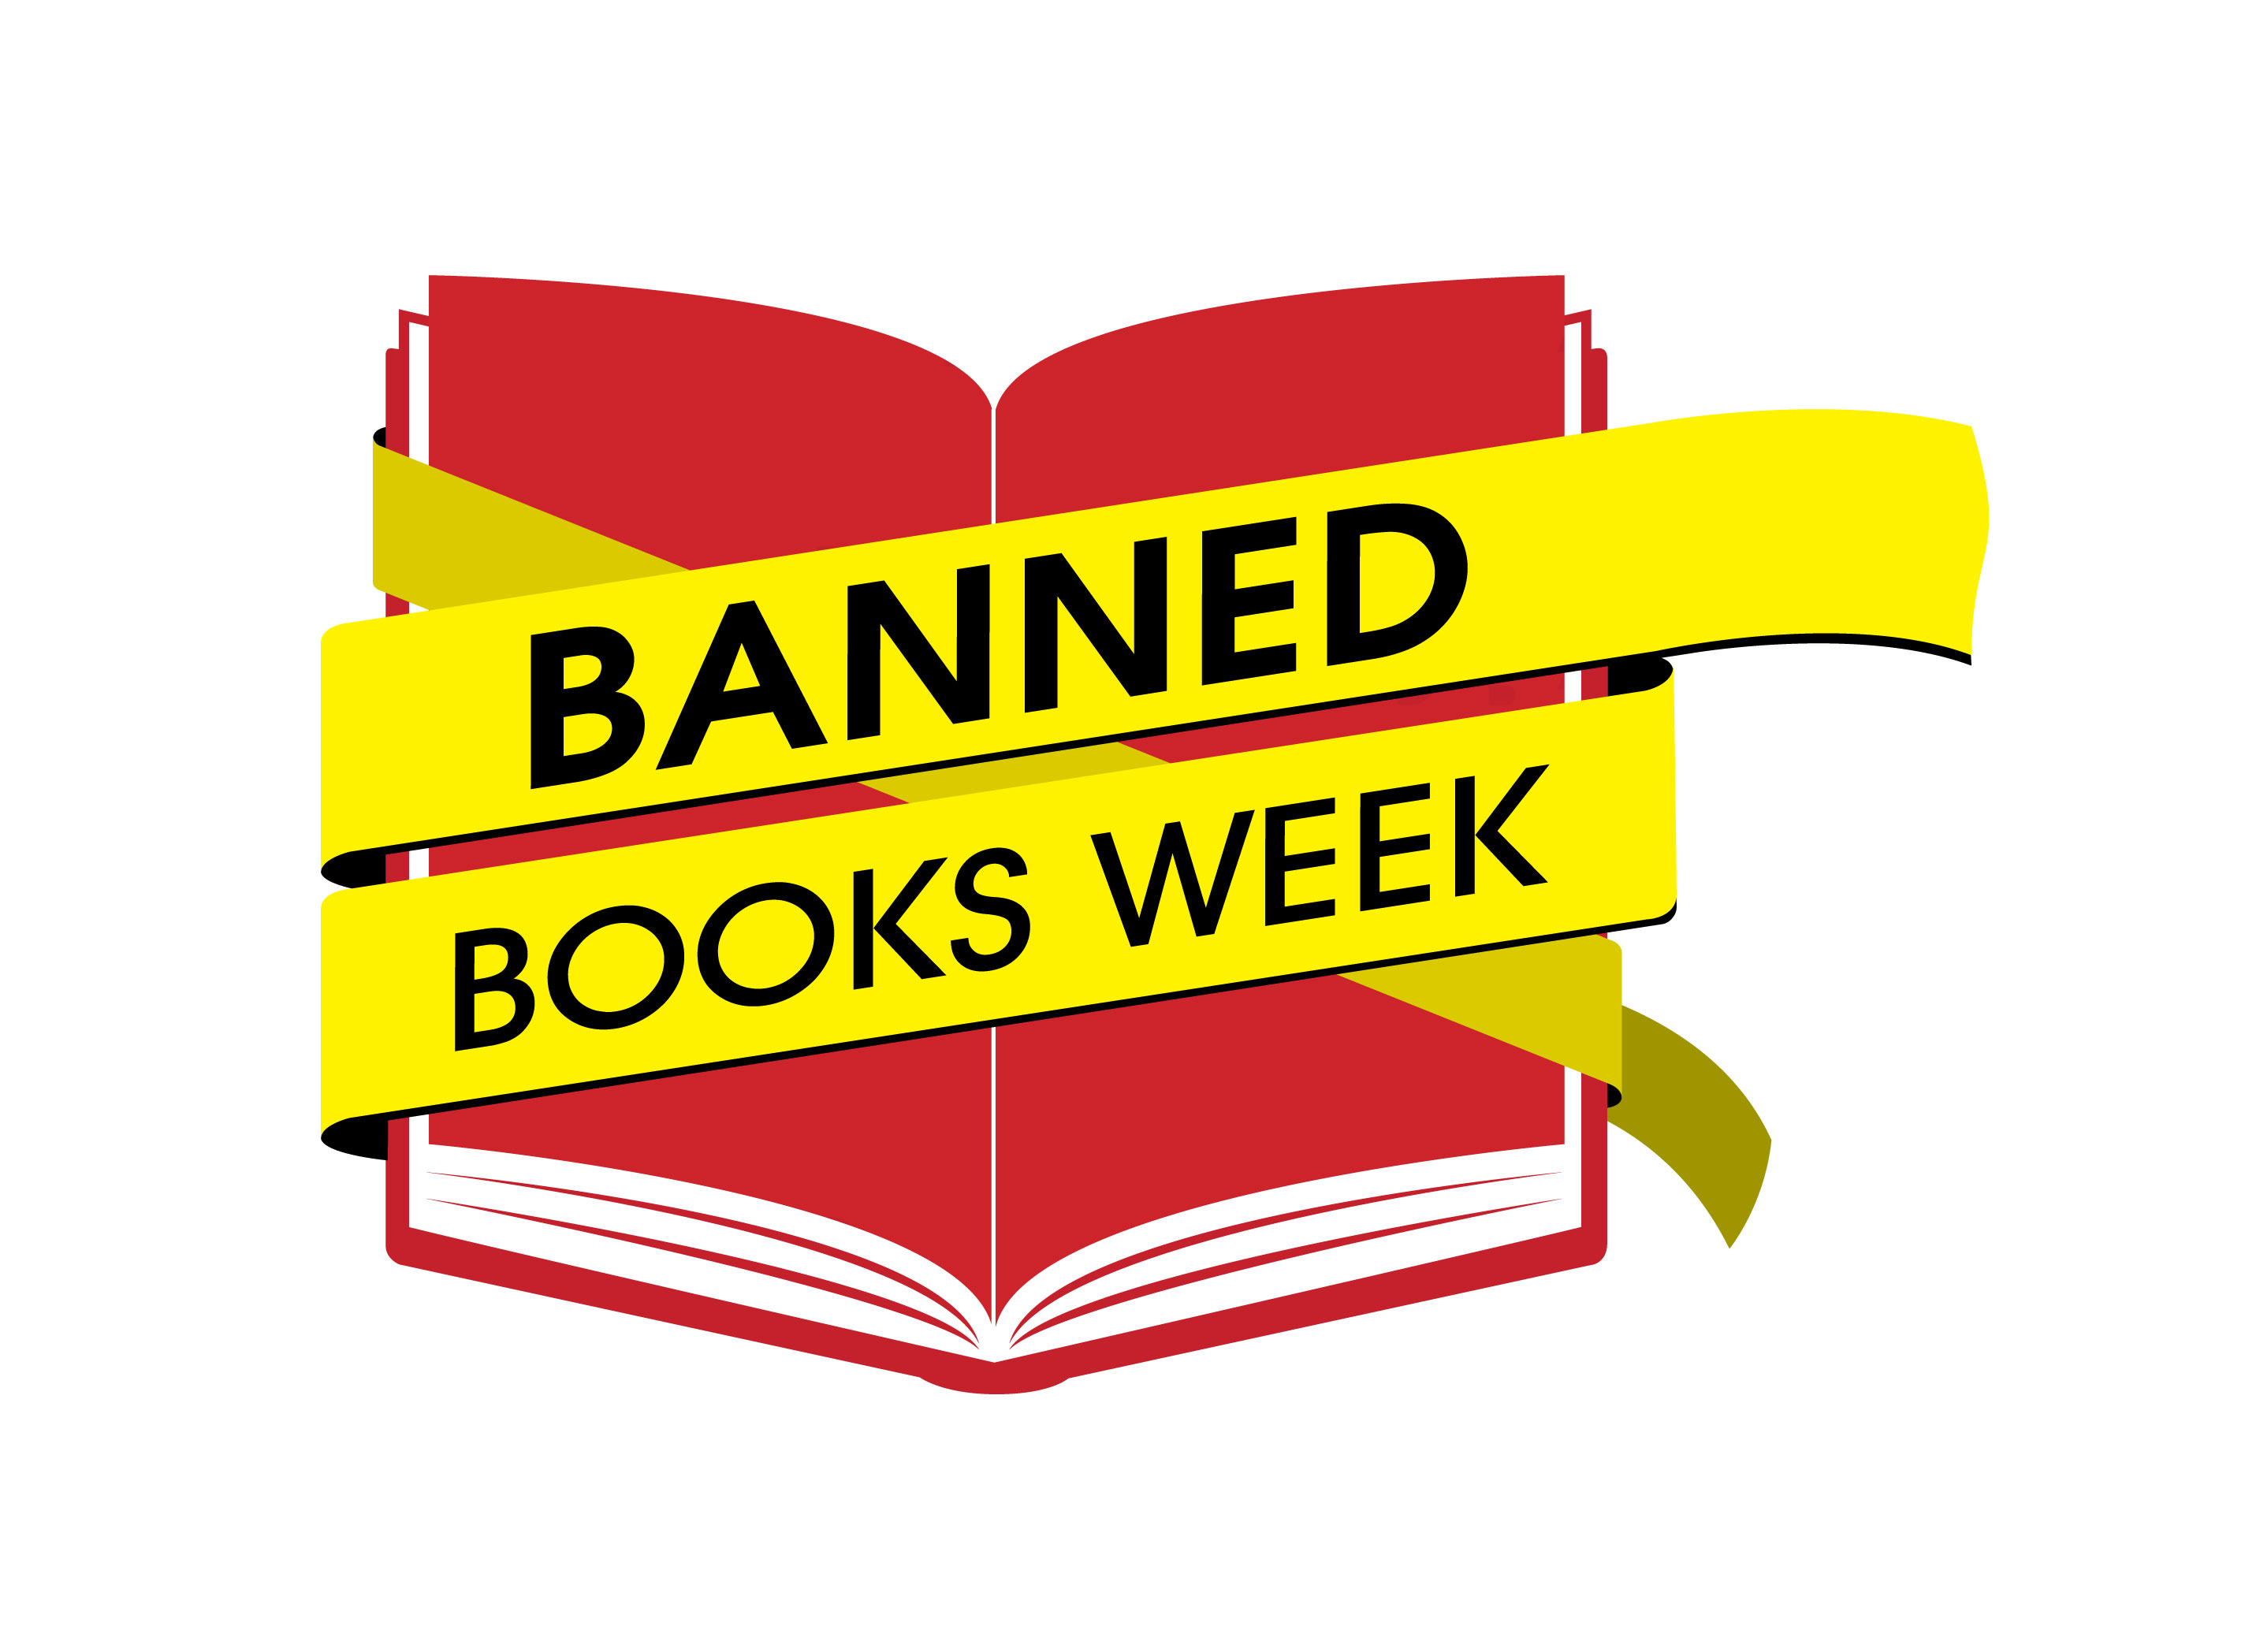 banned_books_week.jpg